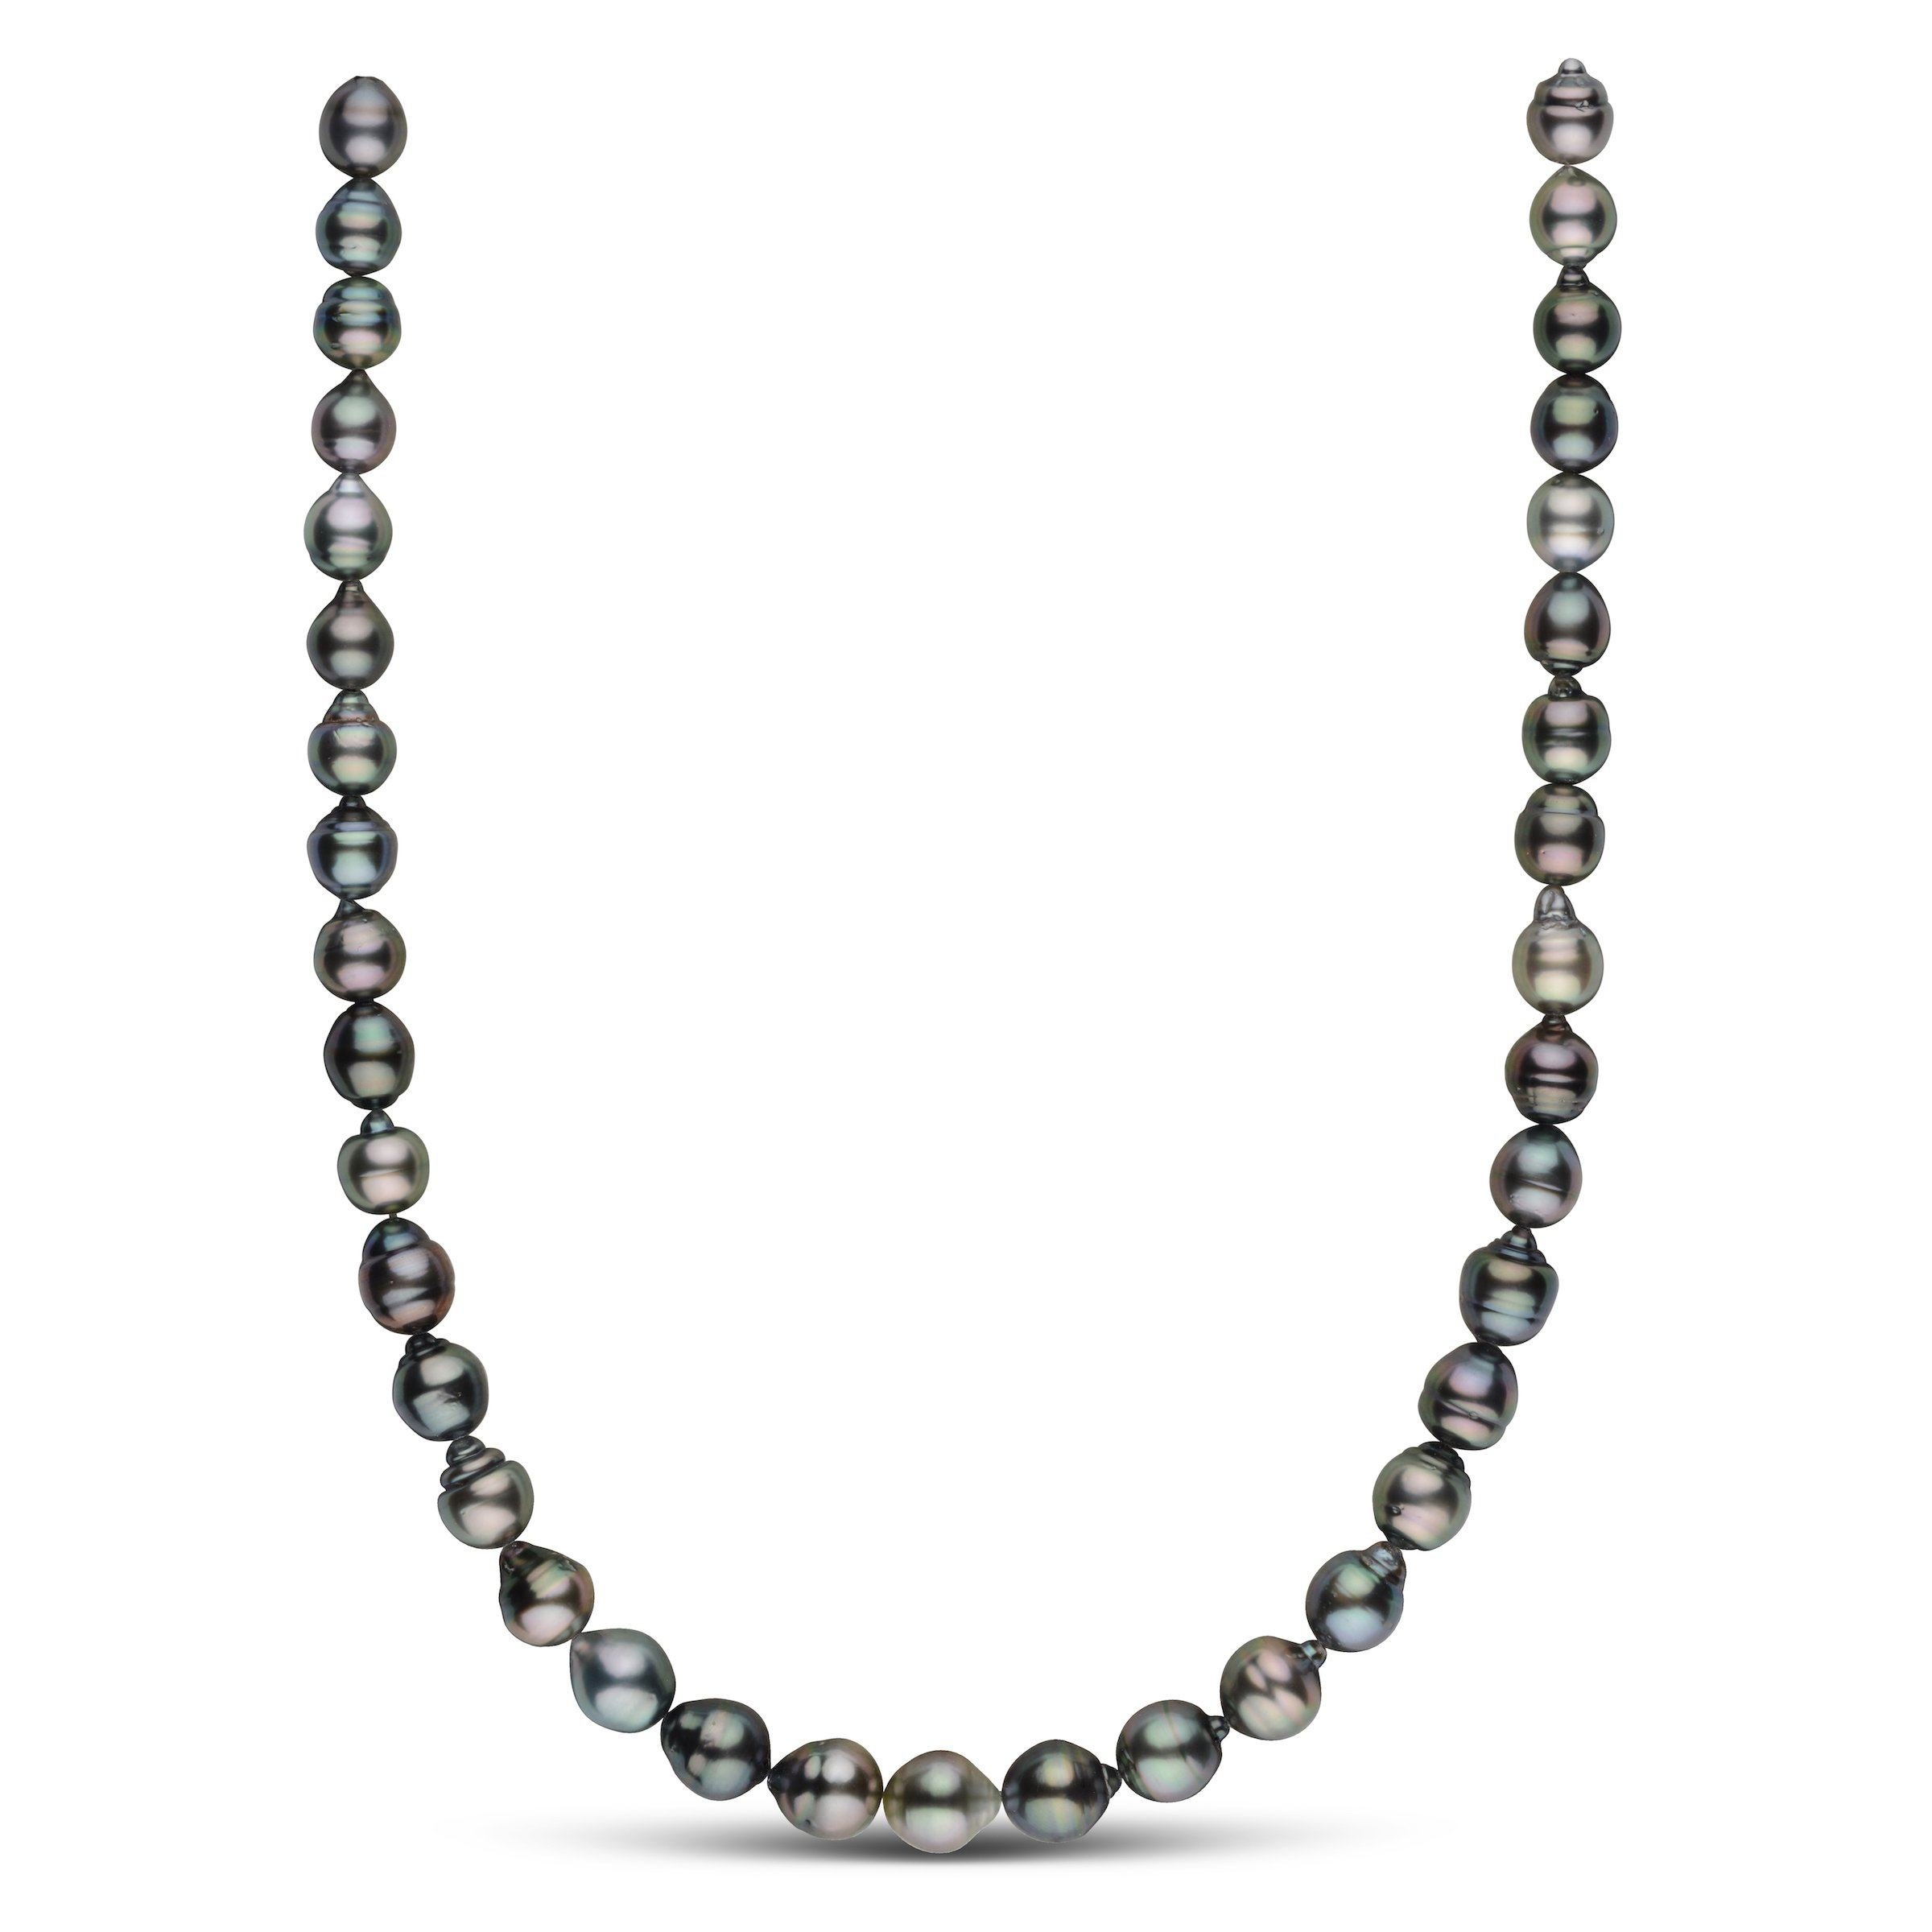 8.6-10.2 mm AAA Tahitian Baroque Pearl Necklace